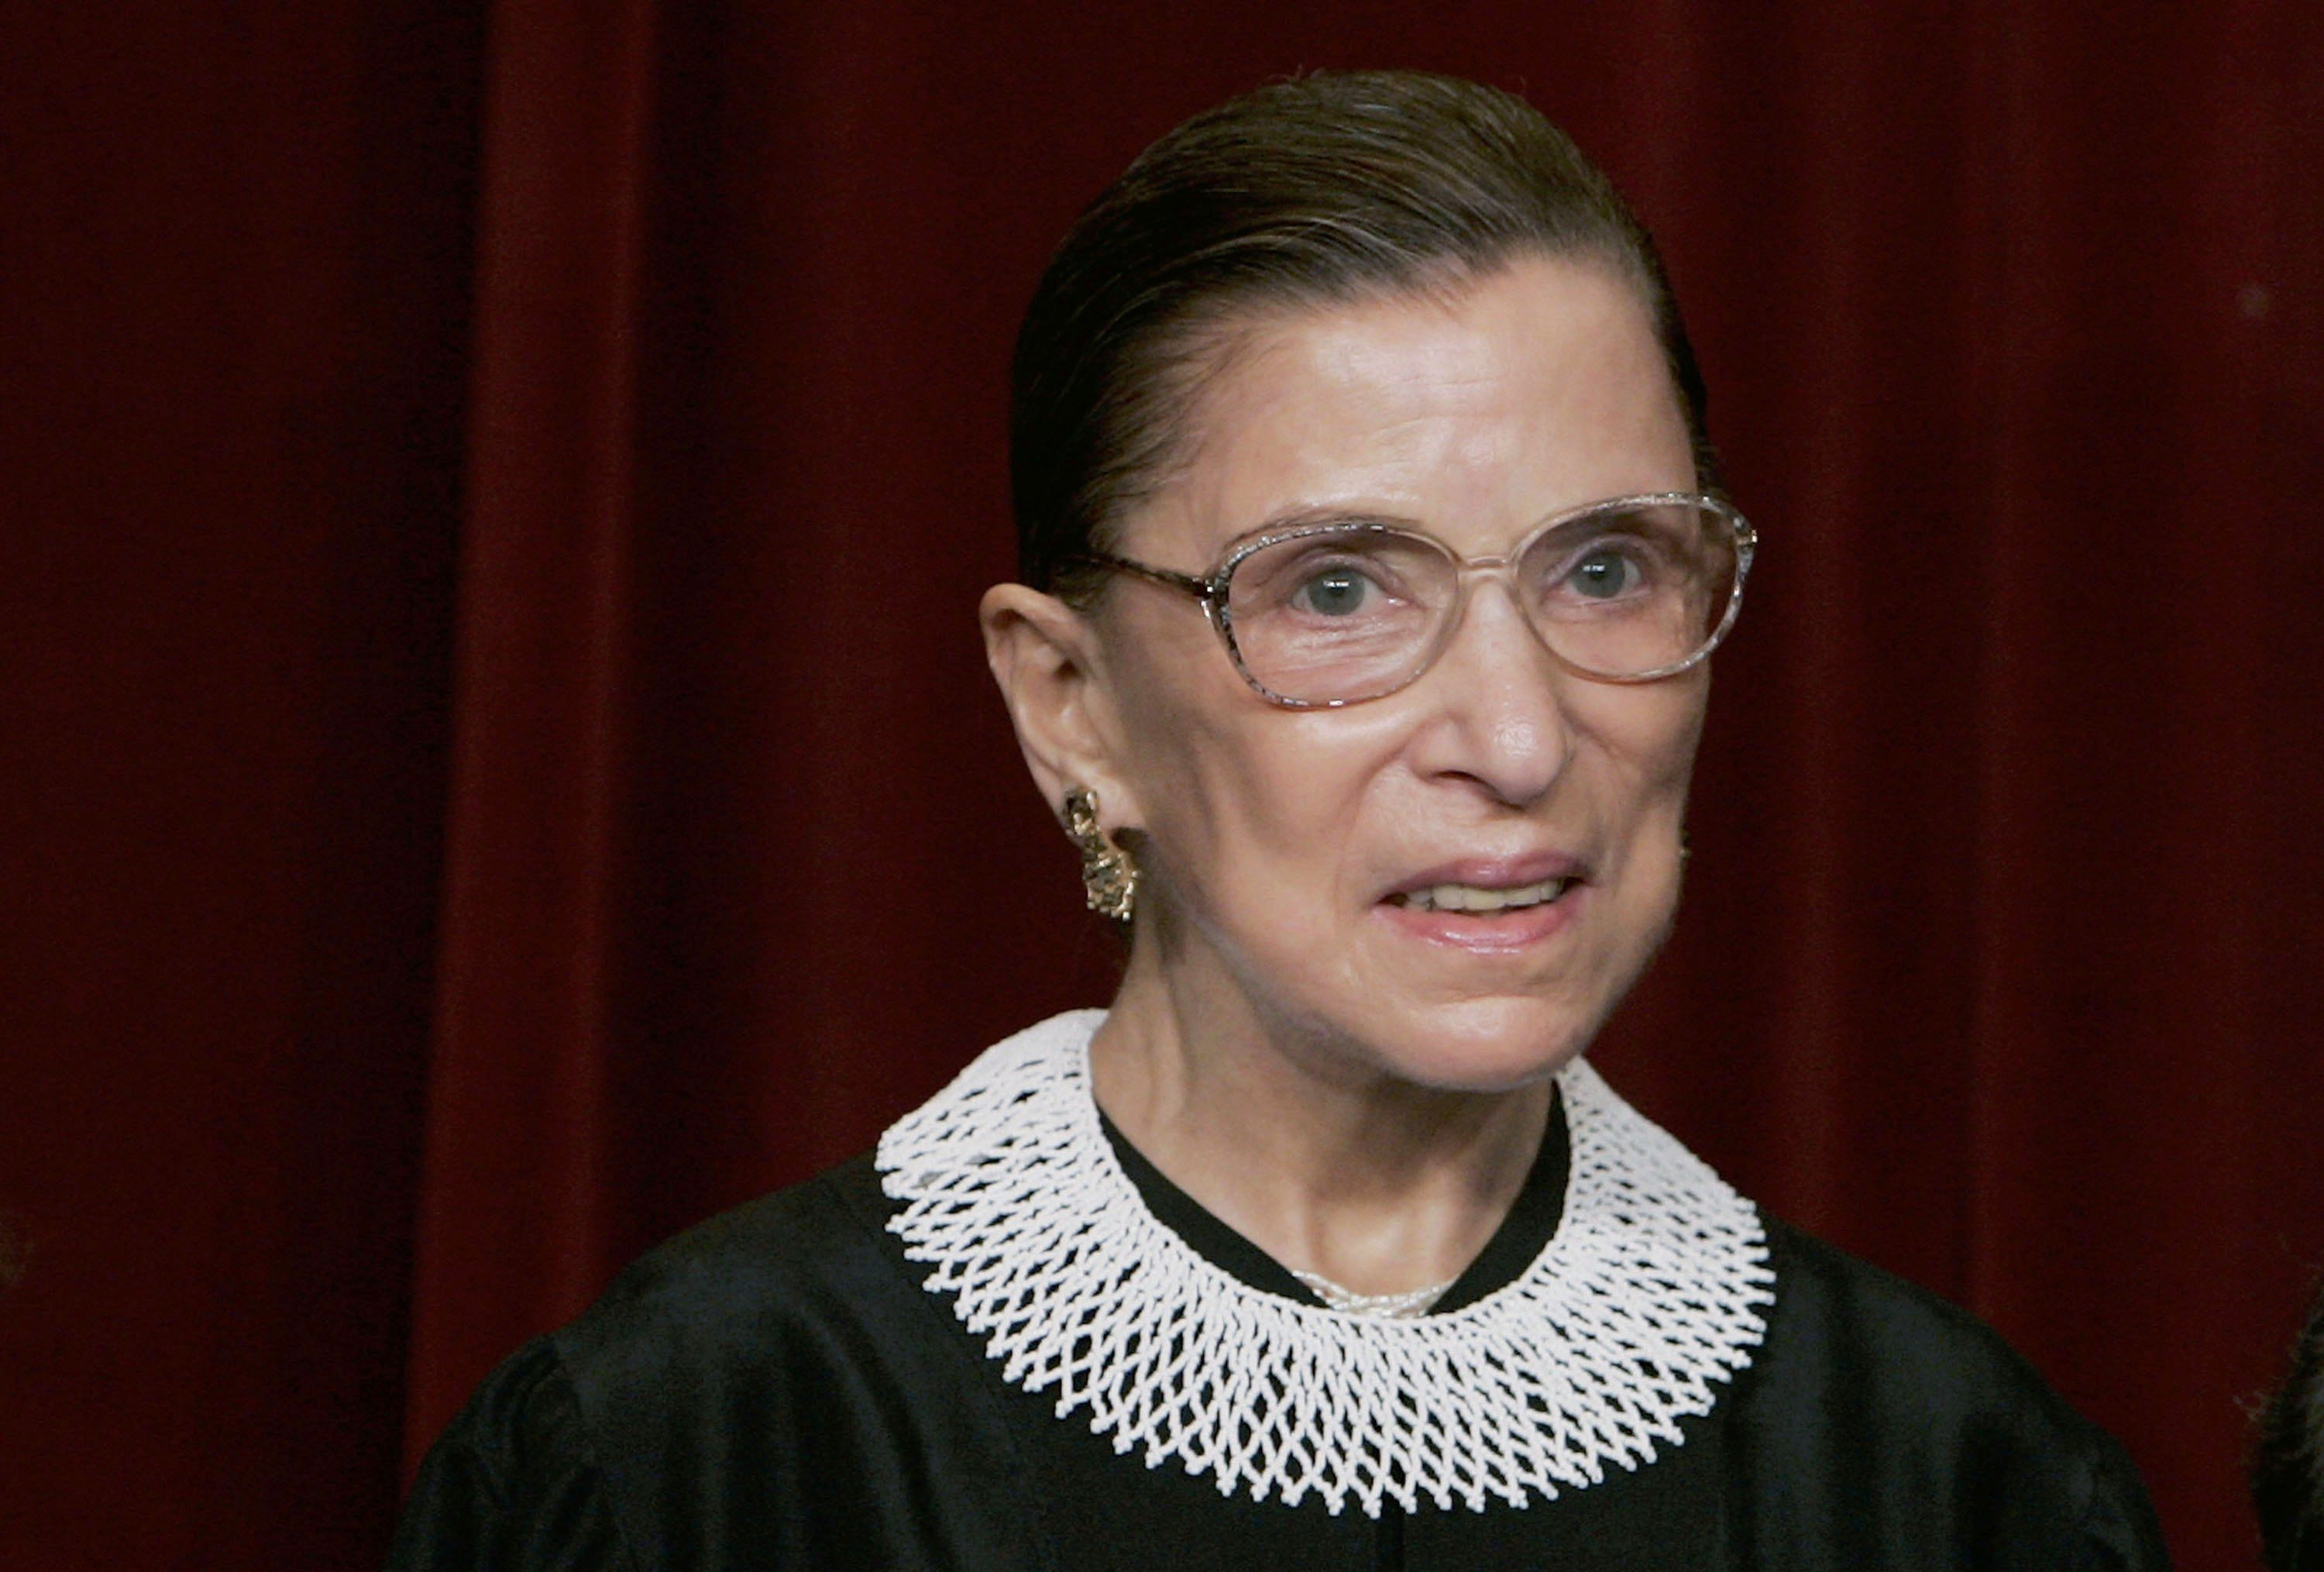 Supreme Court Justice Ruth Bader Ginsburg at the U.S. Supreme Court in 2006 in Washington DC   Source: Getty Images